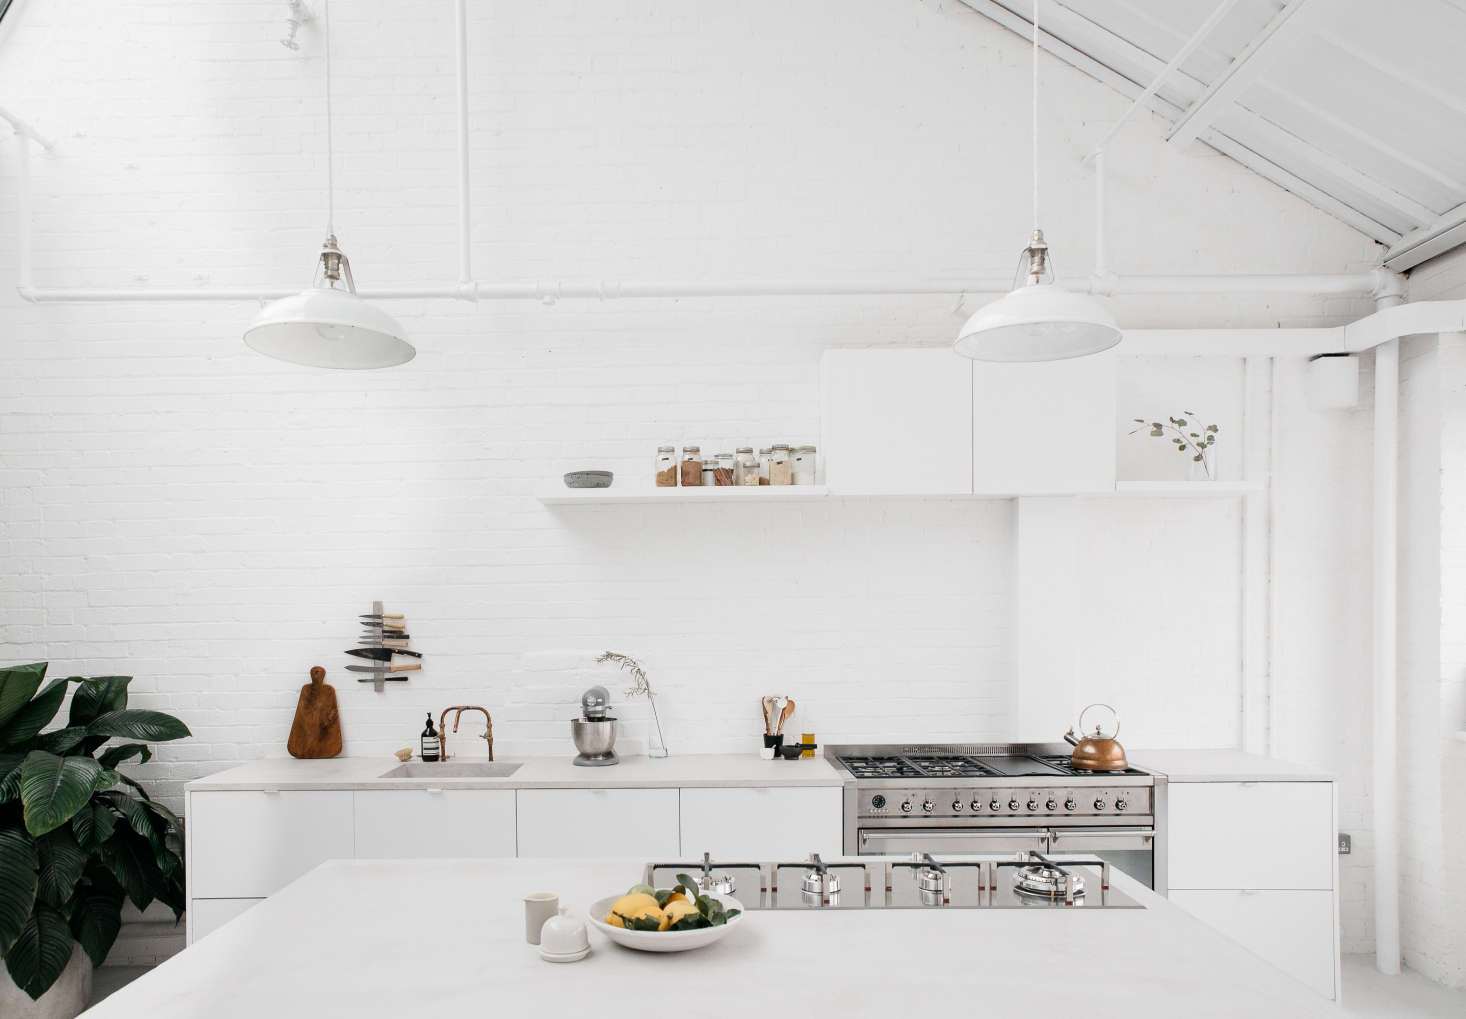 Ikea System In Praise Of Ikea 15 Ikea Kitchens From The Remodelista Archives